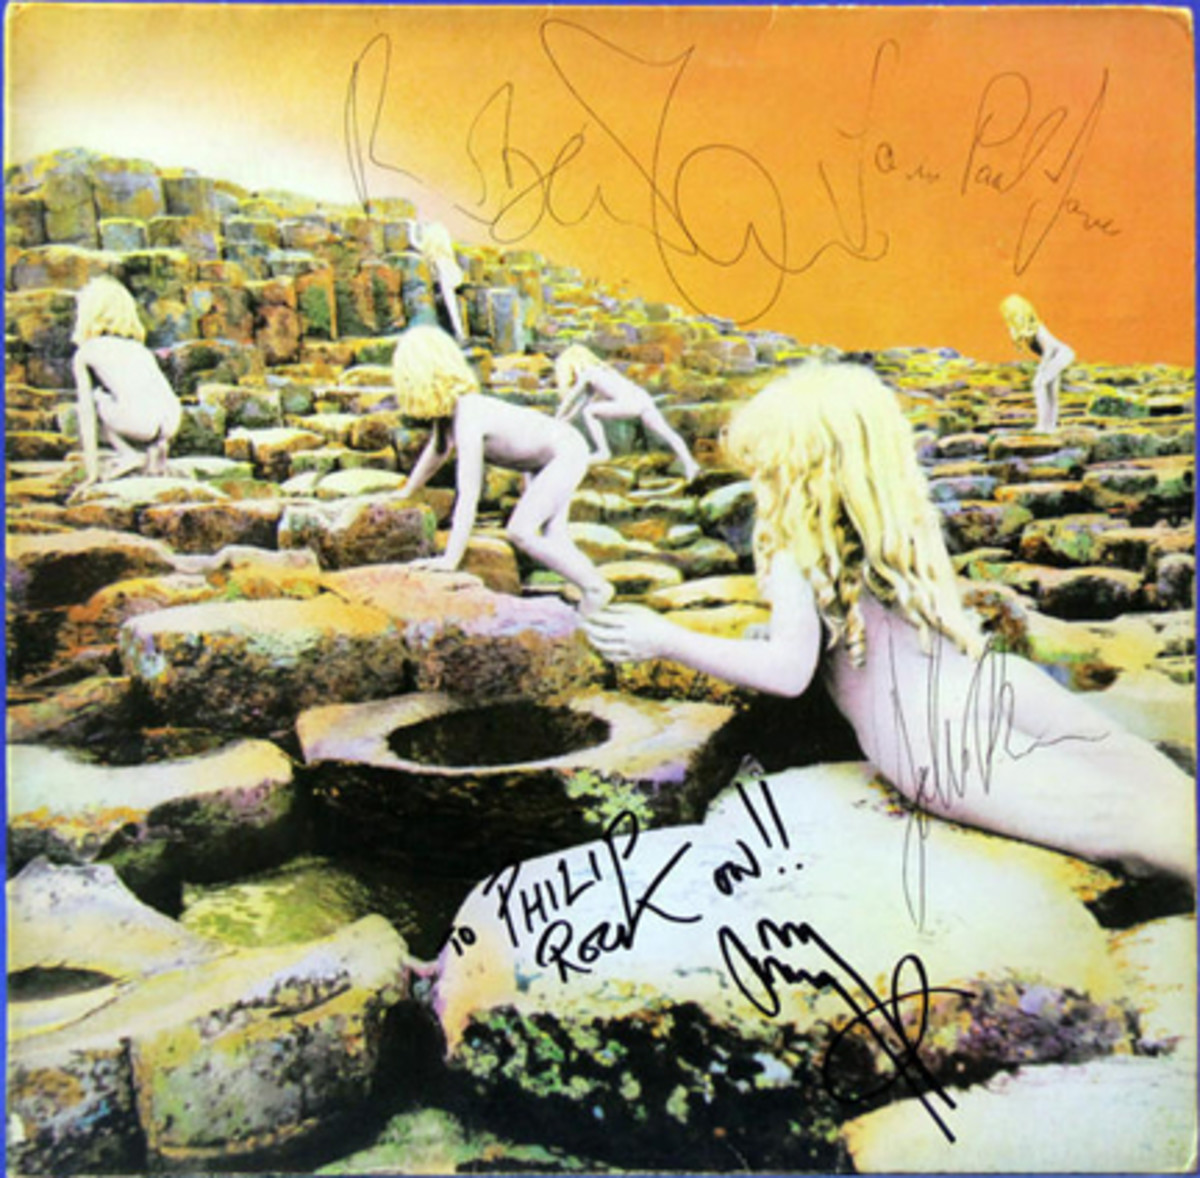 Led Zeppelin signed Houses of the Holy Album